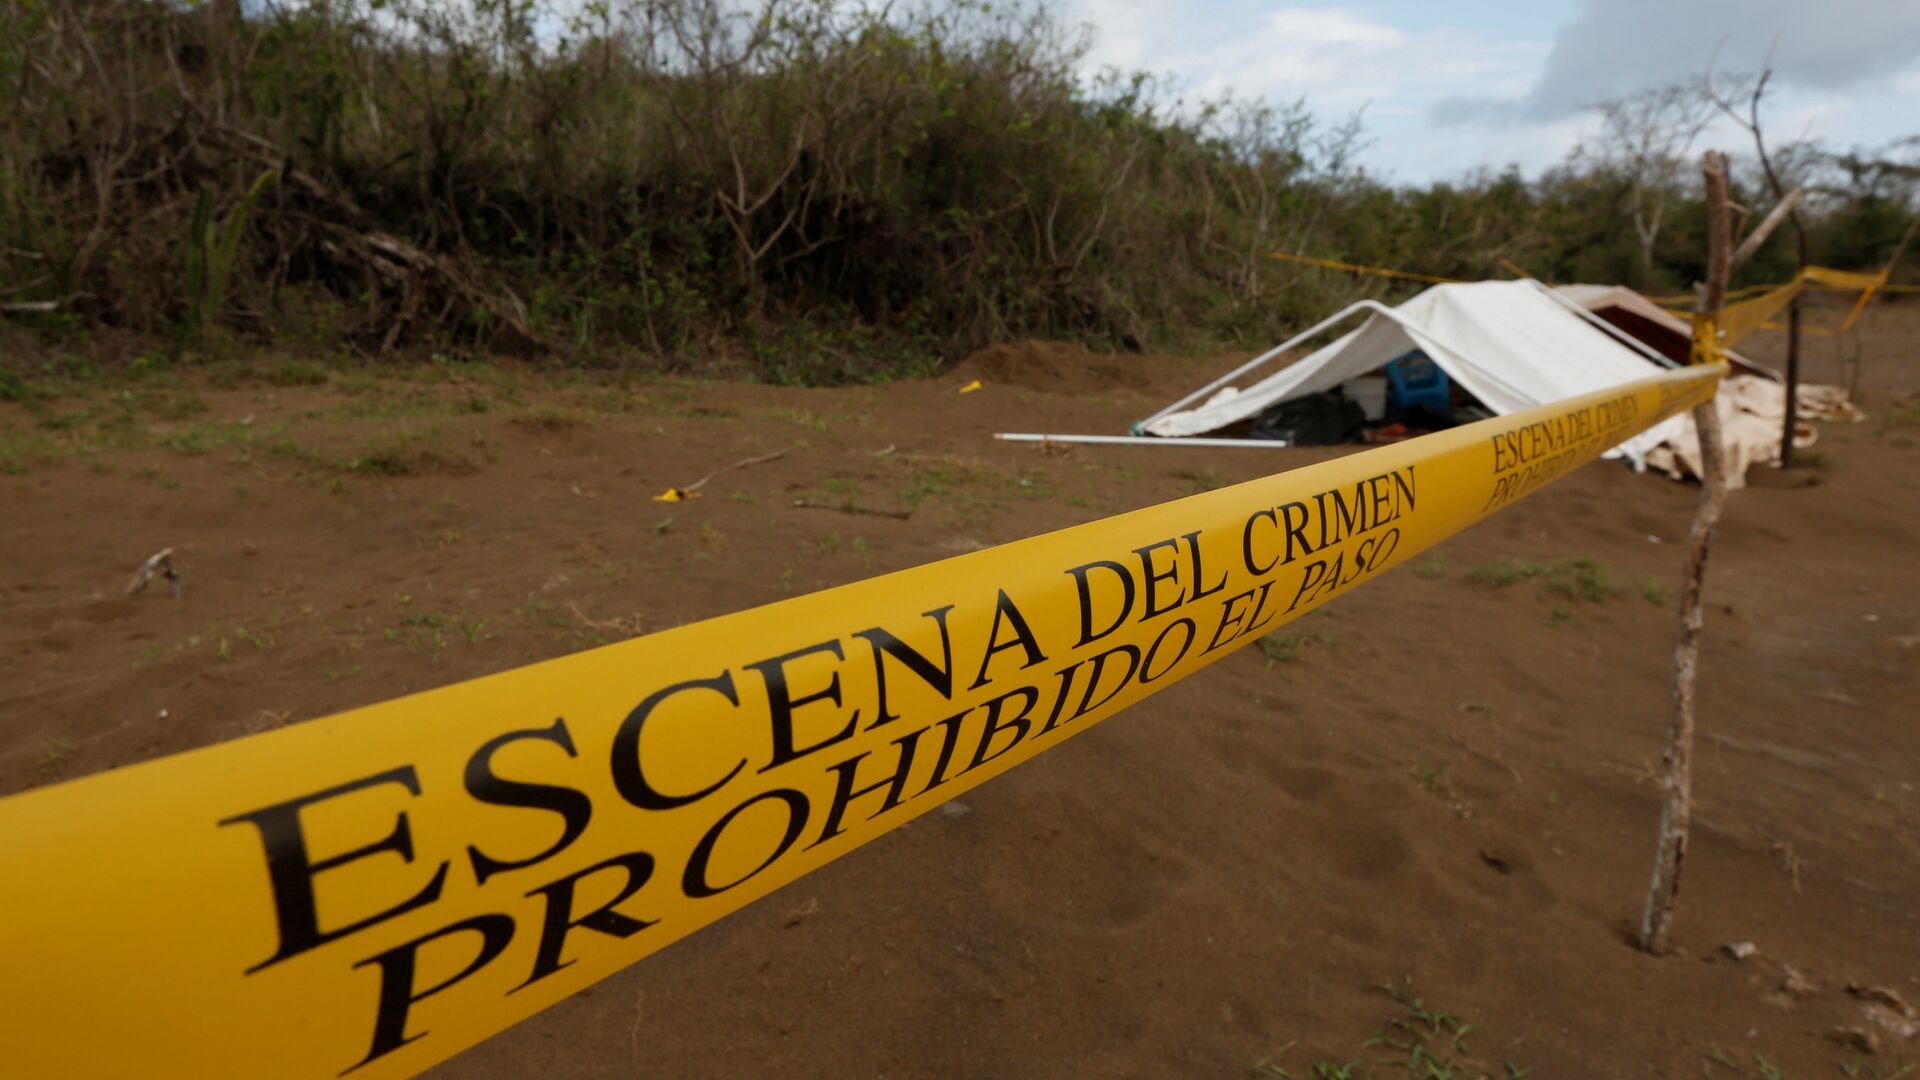 A police cordon marks the perimeter of the site where a forensic team and judicial authorities work in unmarked graves where skulls were found, on the outskirts of Veracruz - Sputnik Mundo, 1920, 23.07.2021